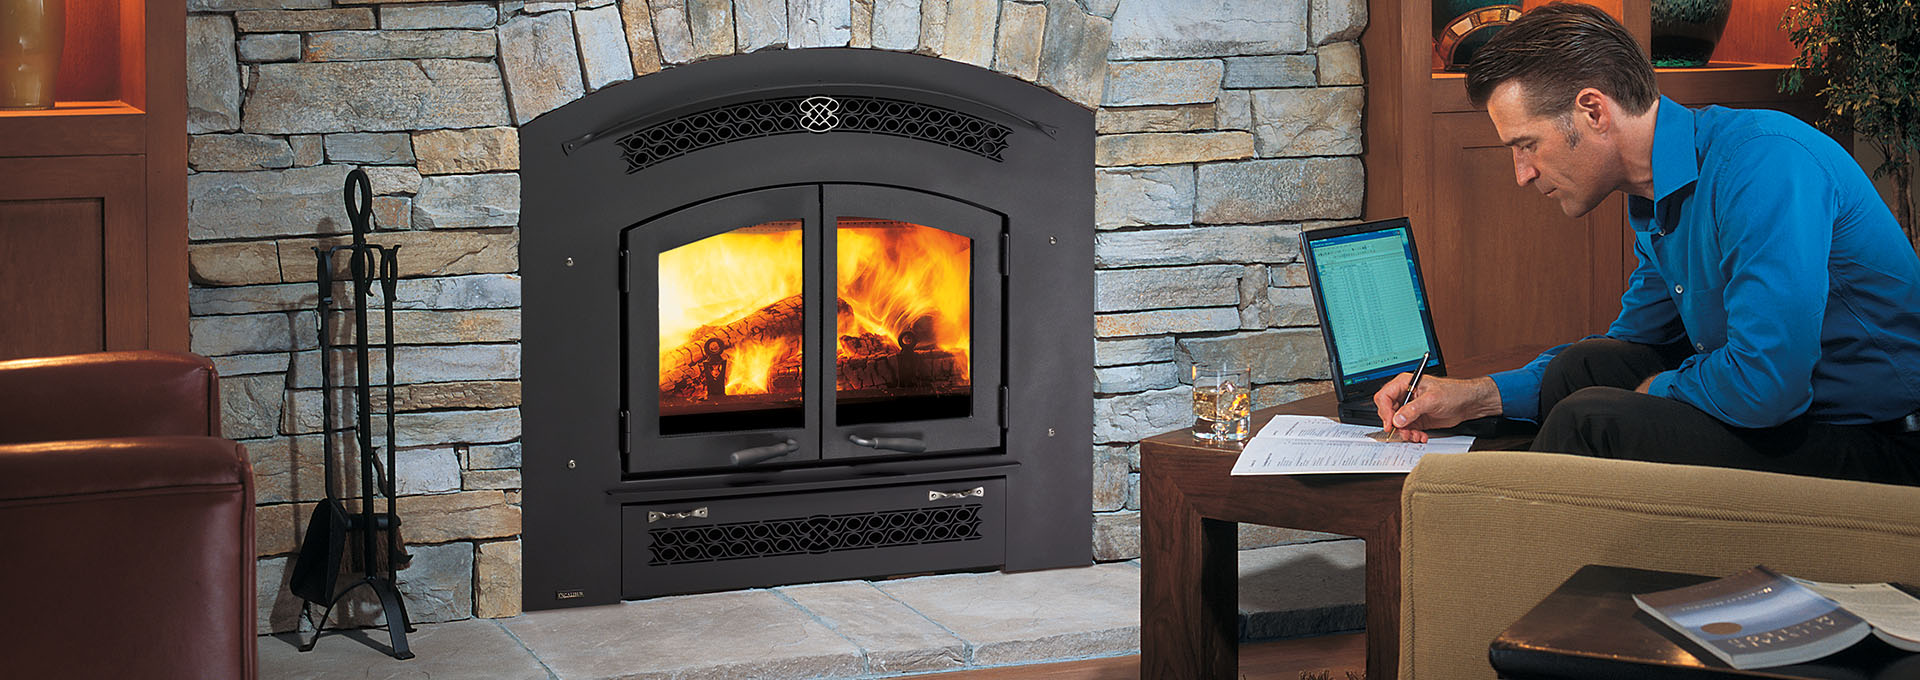 Wood Burning Fireplaces - Regency Fireplace Products